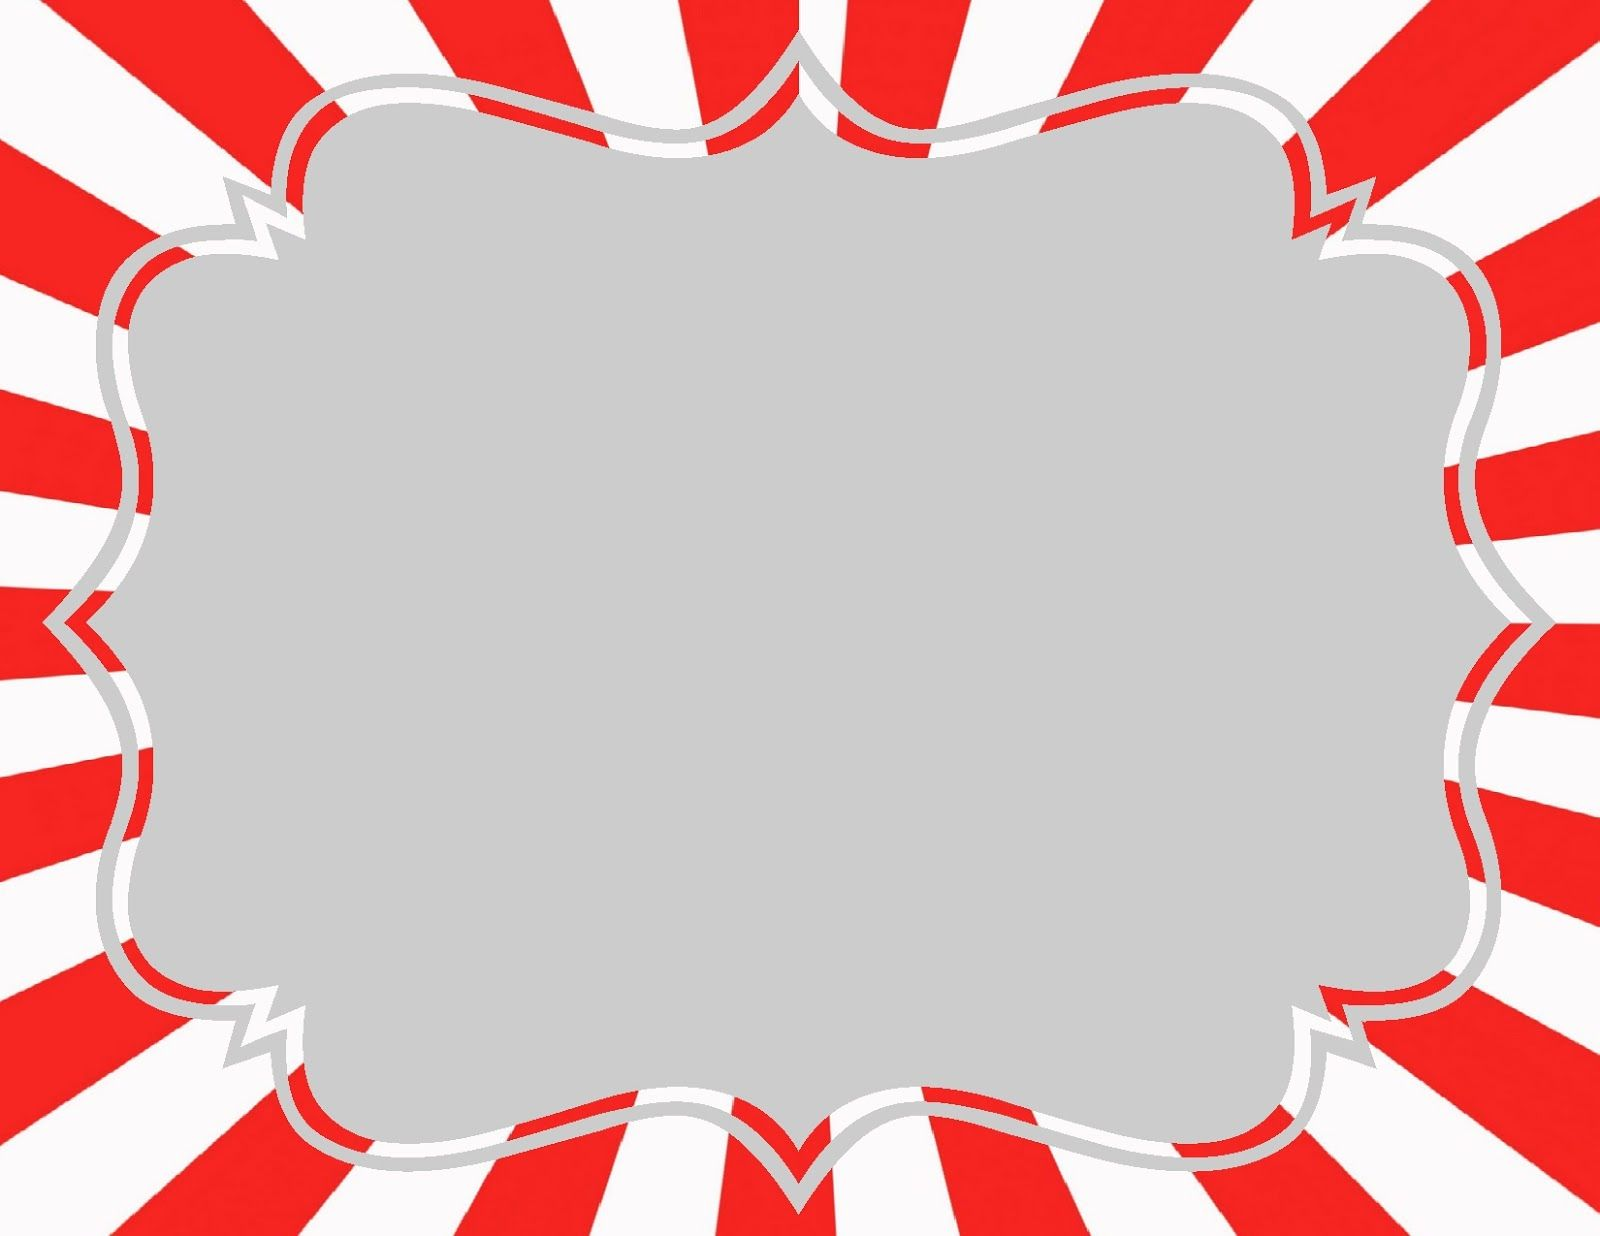 blank circus sign template - Google Search | Carnival